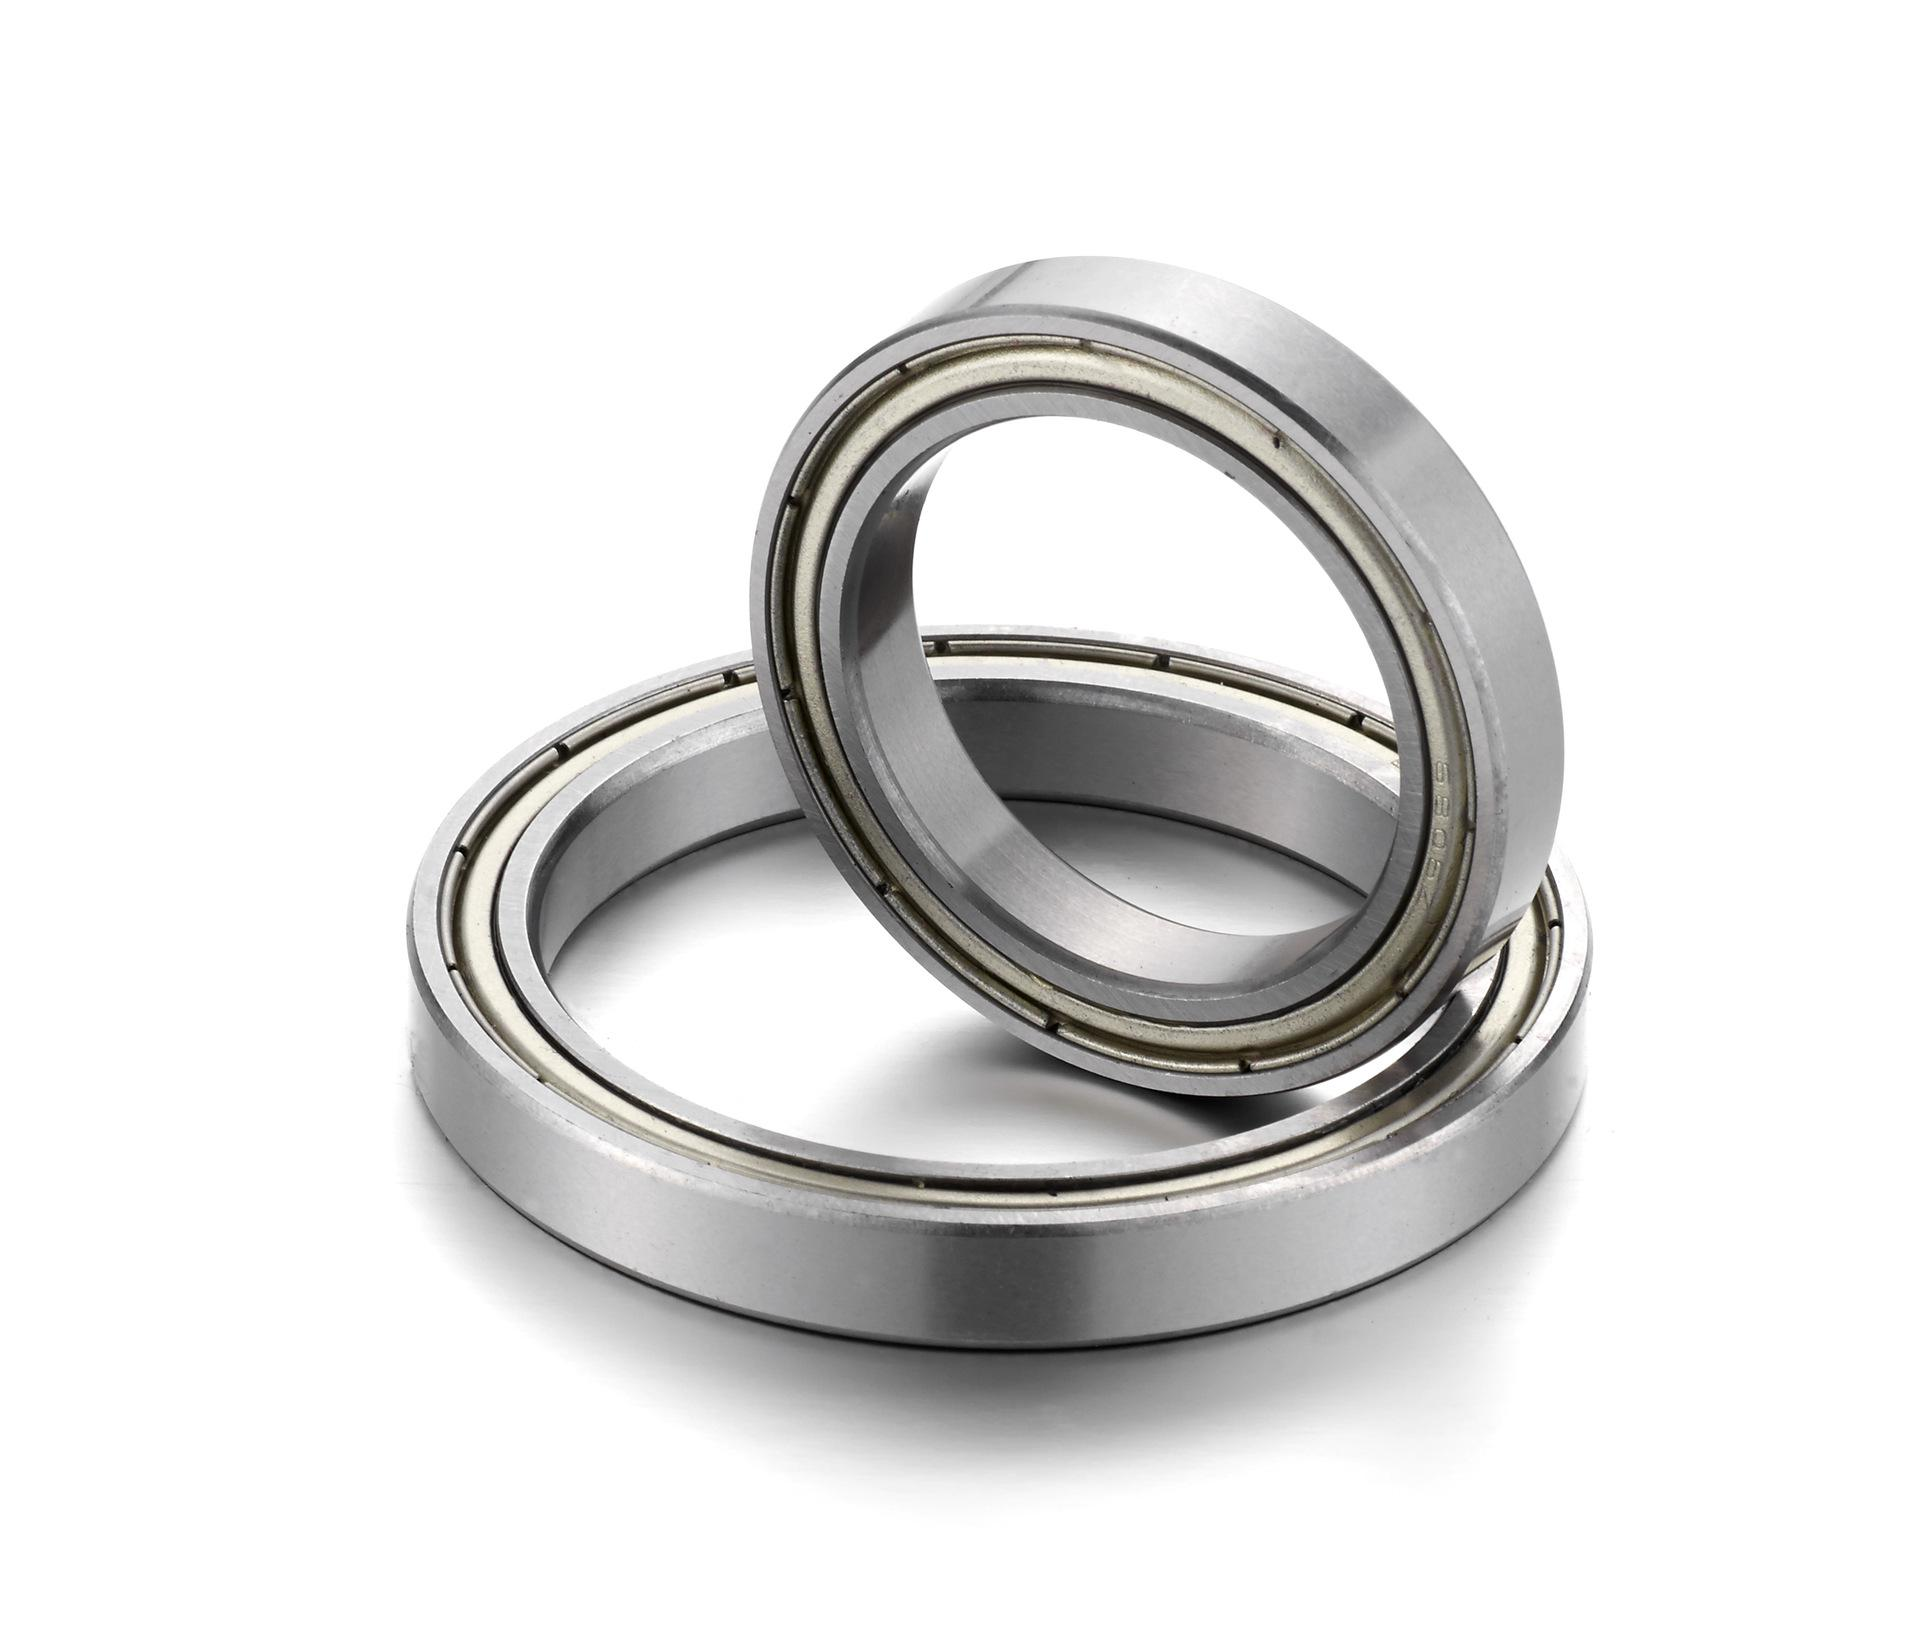 6930M ABEC-1 150x210x28MM Metric Thin Section Bearings 61930M Brass cage citilux подвесная люстра citilux базель cl407132